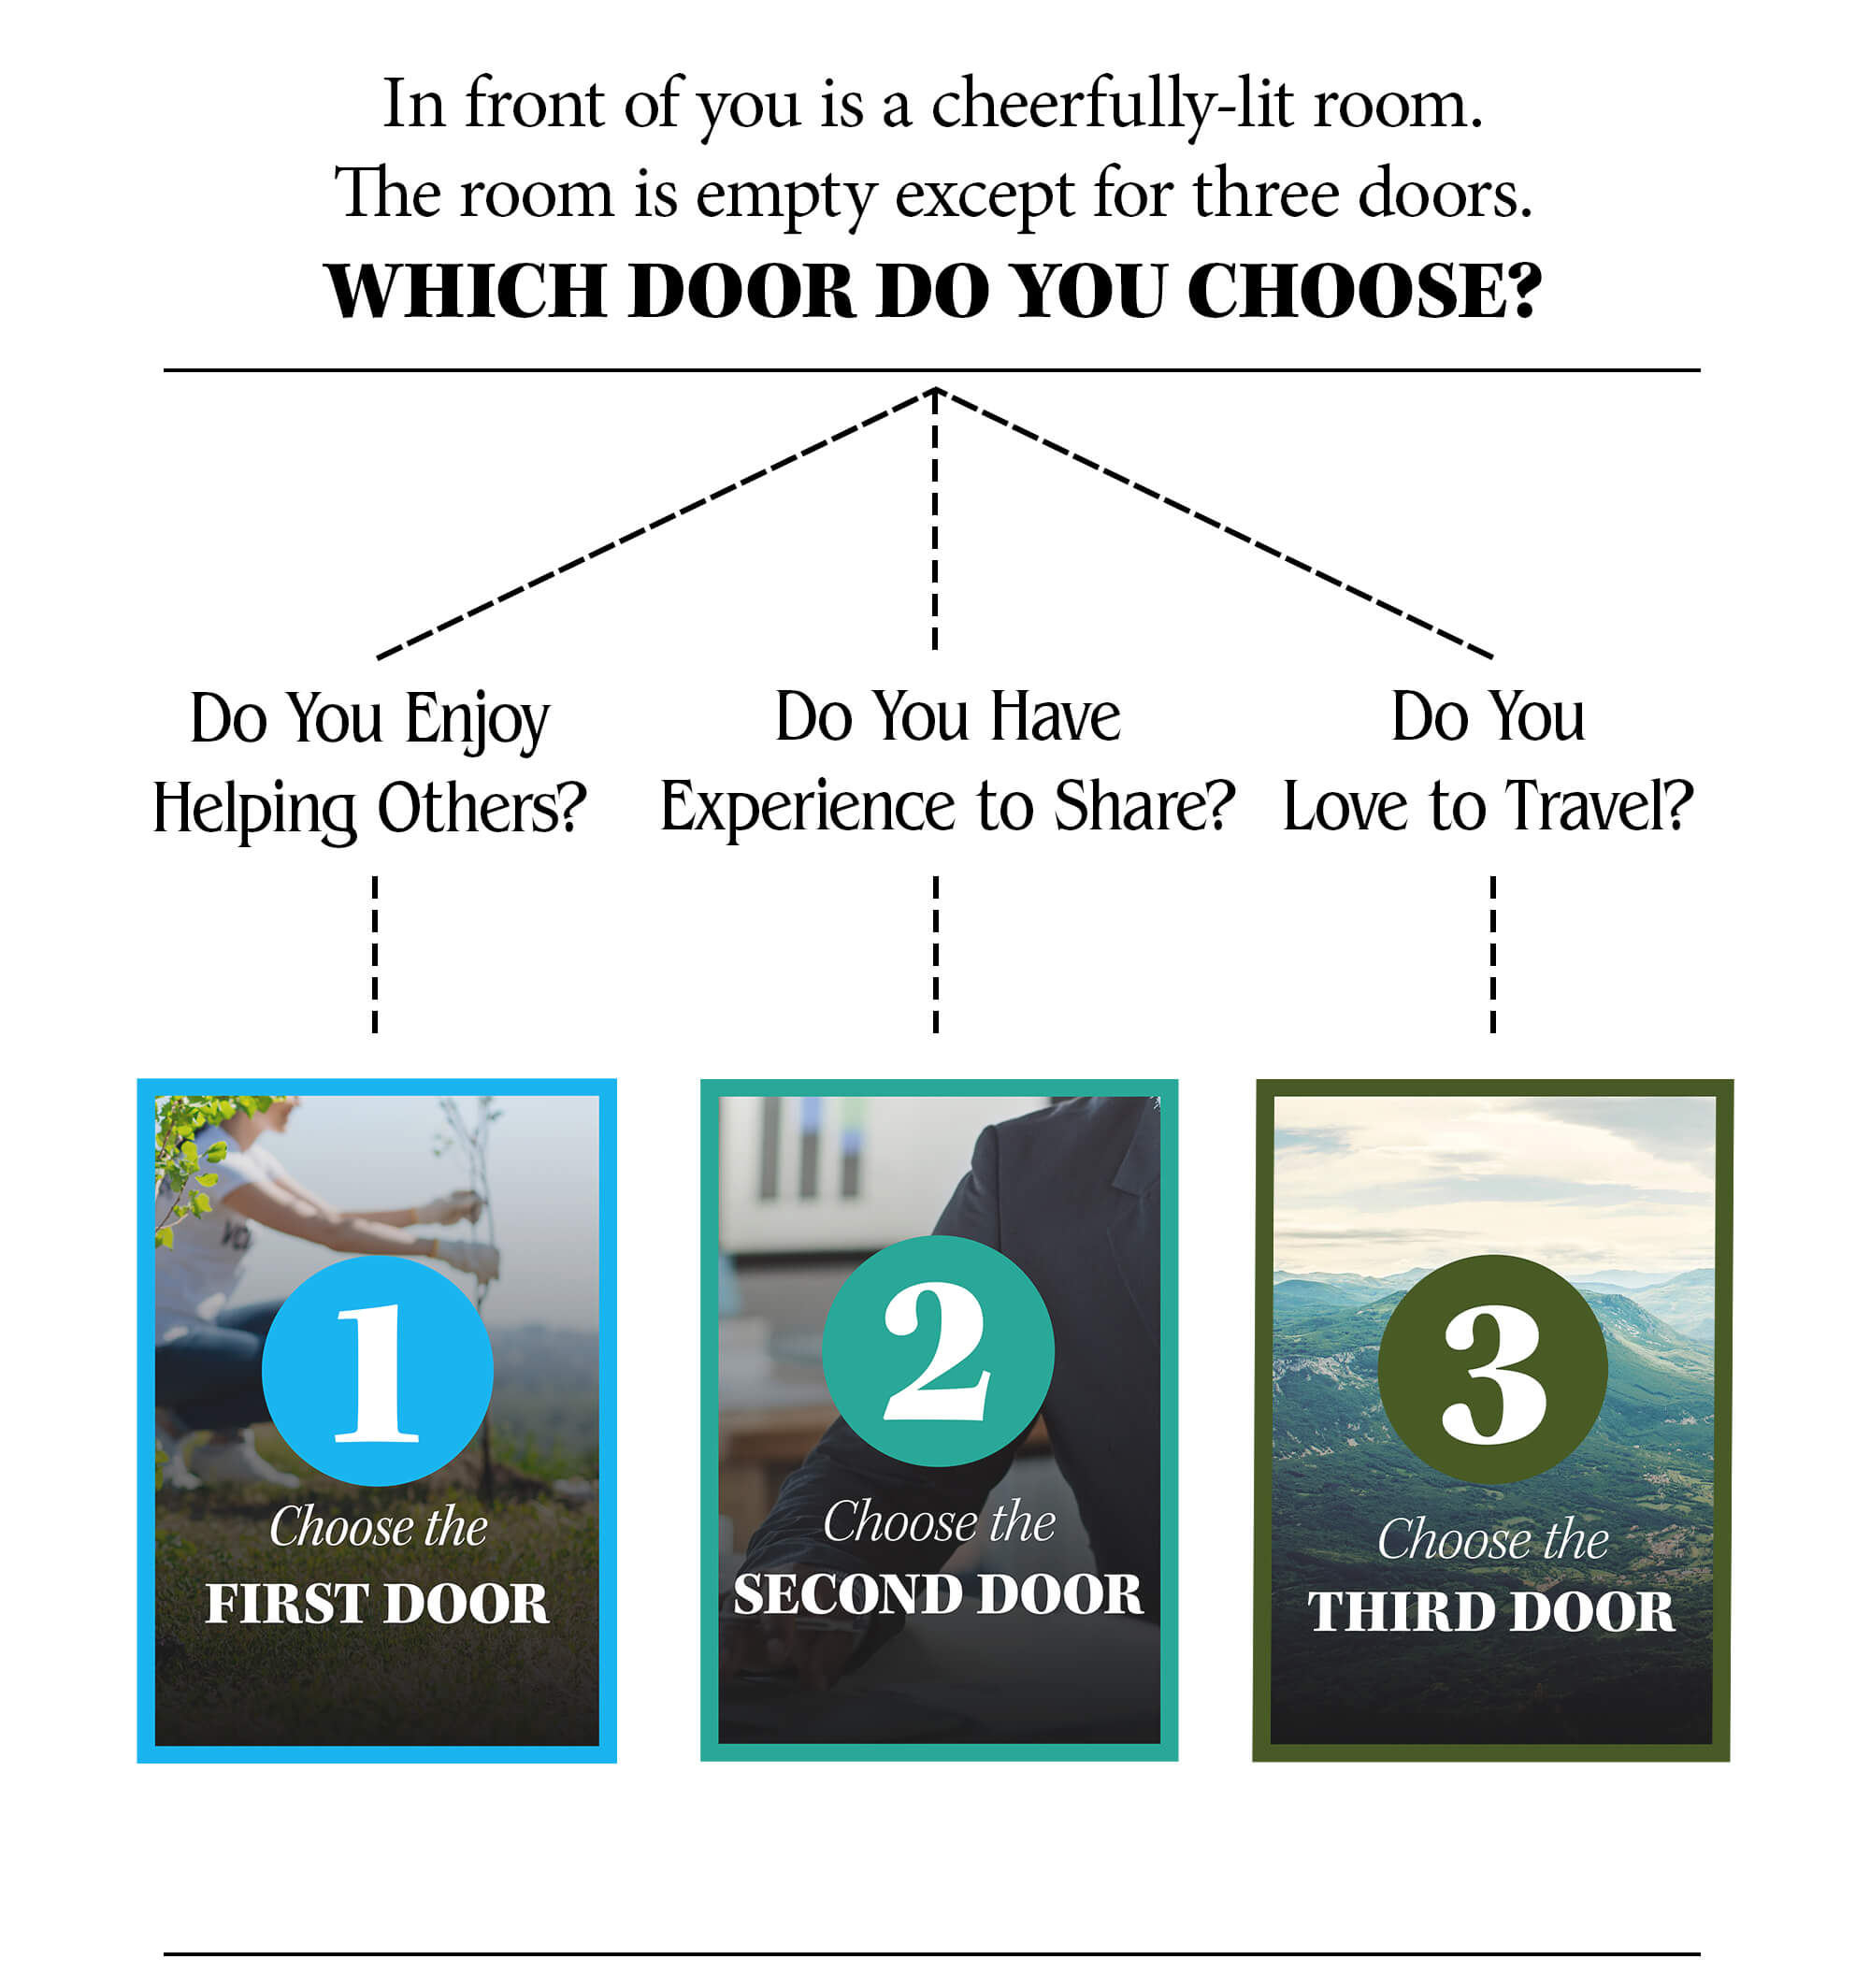 In front of you is a cheerfully lit room. The room is empty except for three doors. Which door do you choose? Do You Enjoy Helping Others? Choose the First Door. Do You Have Experience to share? Choose the Second Door. Do You Love to Travel?  Choose the Third Door